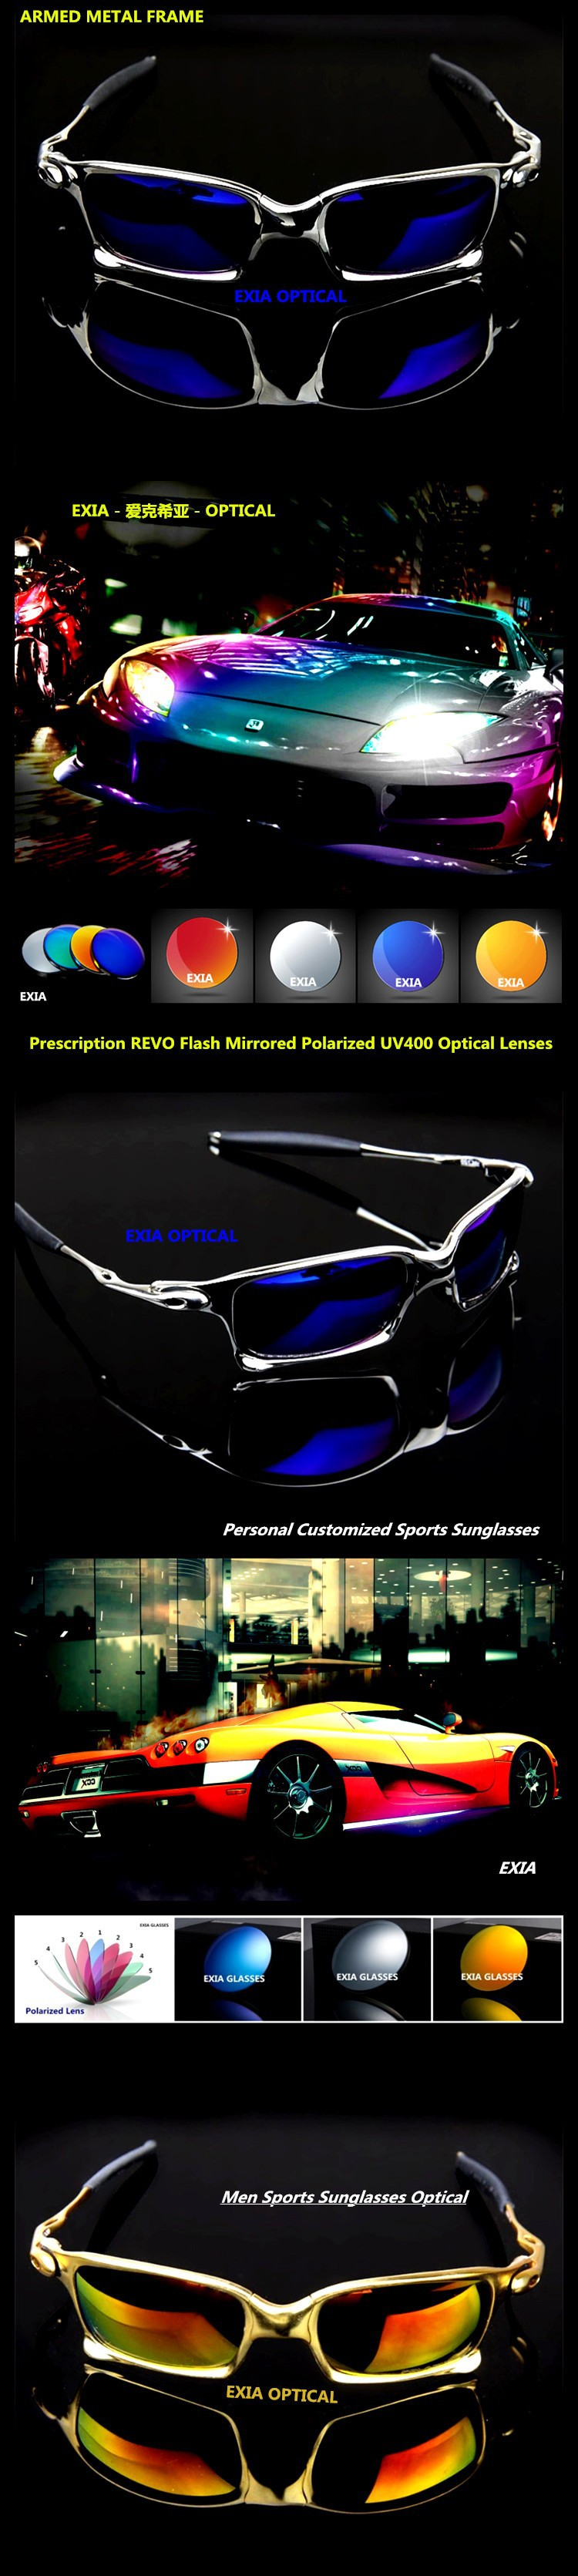 47dc3a8455 Luxury Sunglasses REVO Mirror Prescription Optical Polarized Sun ...